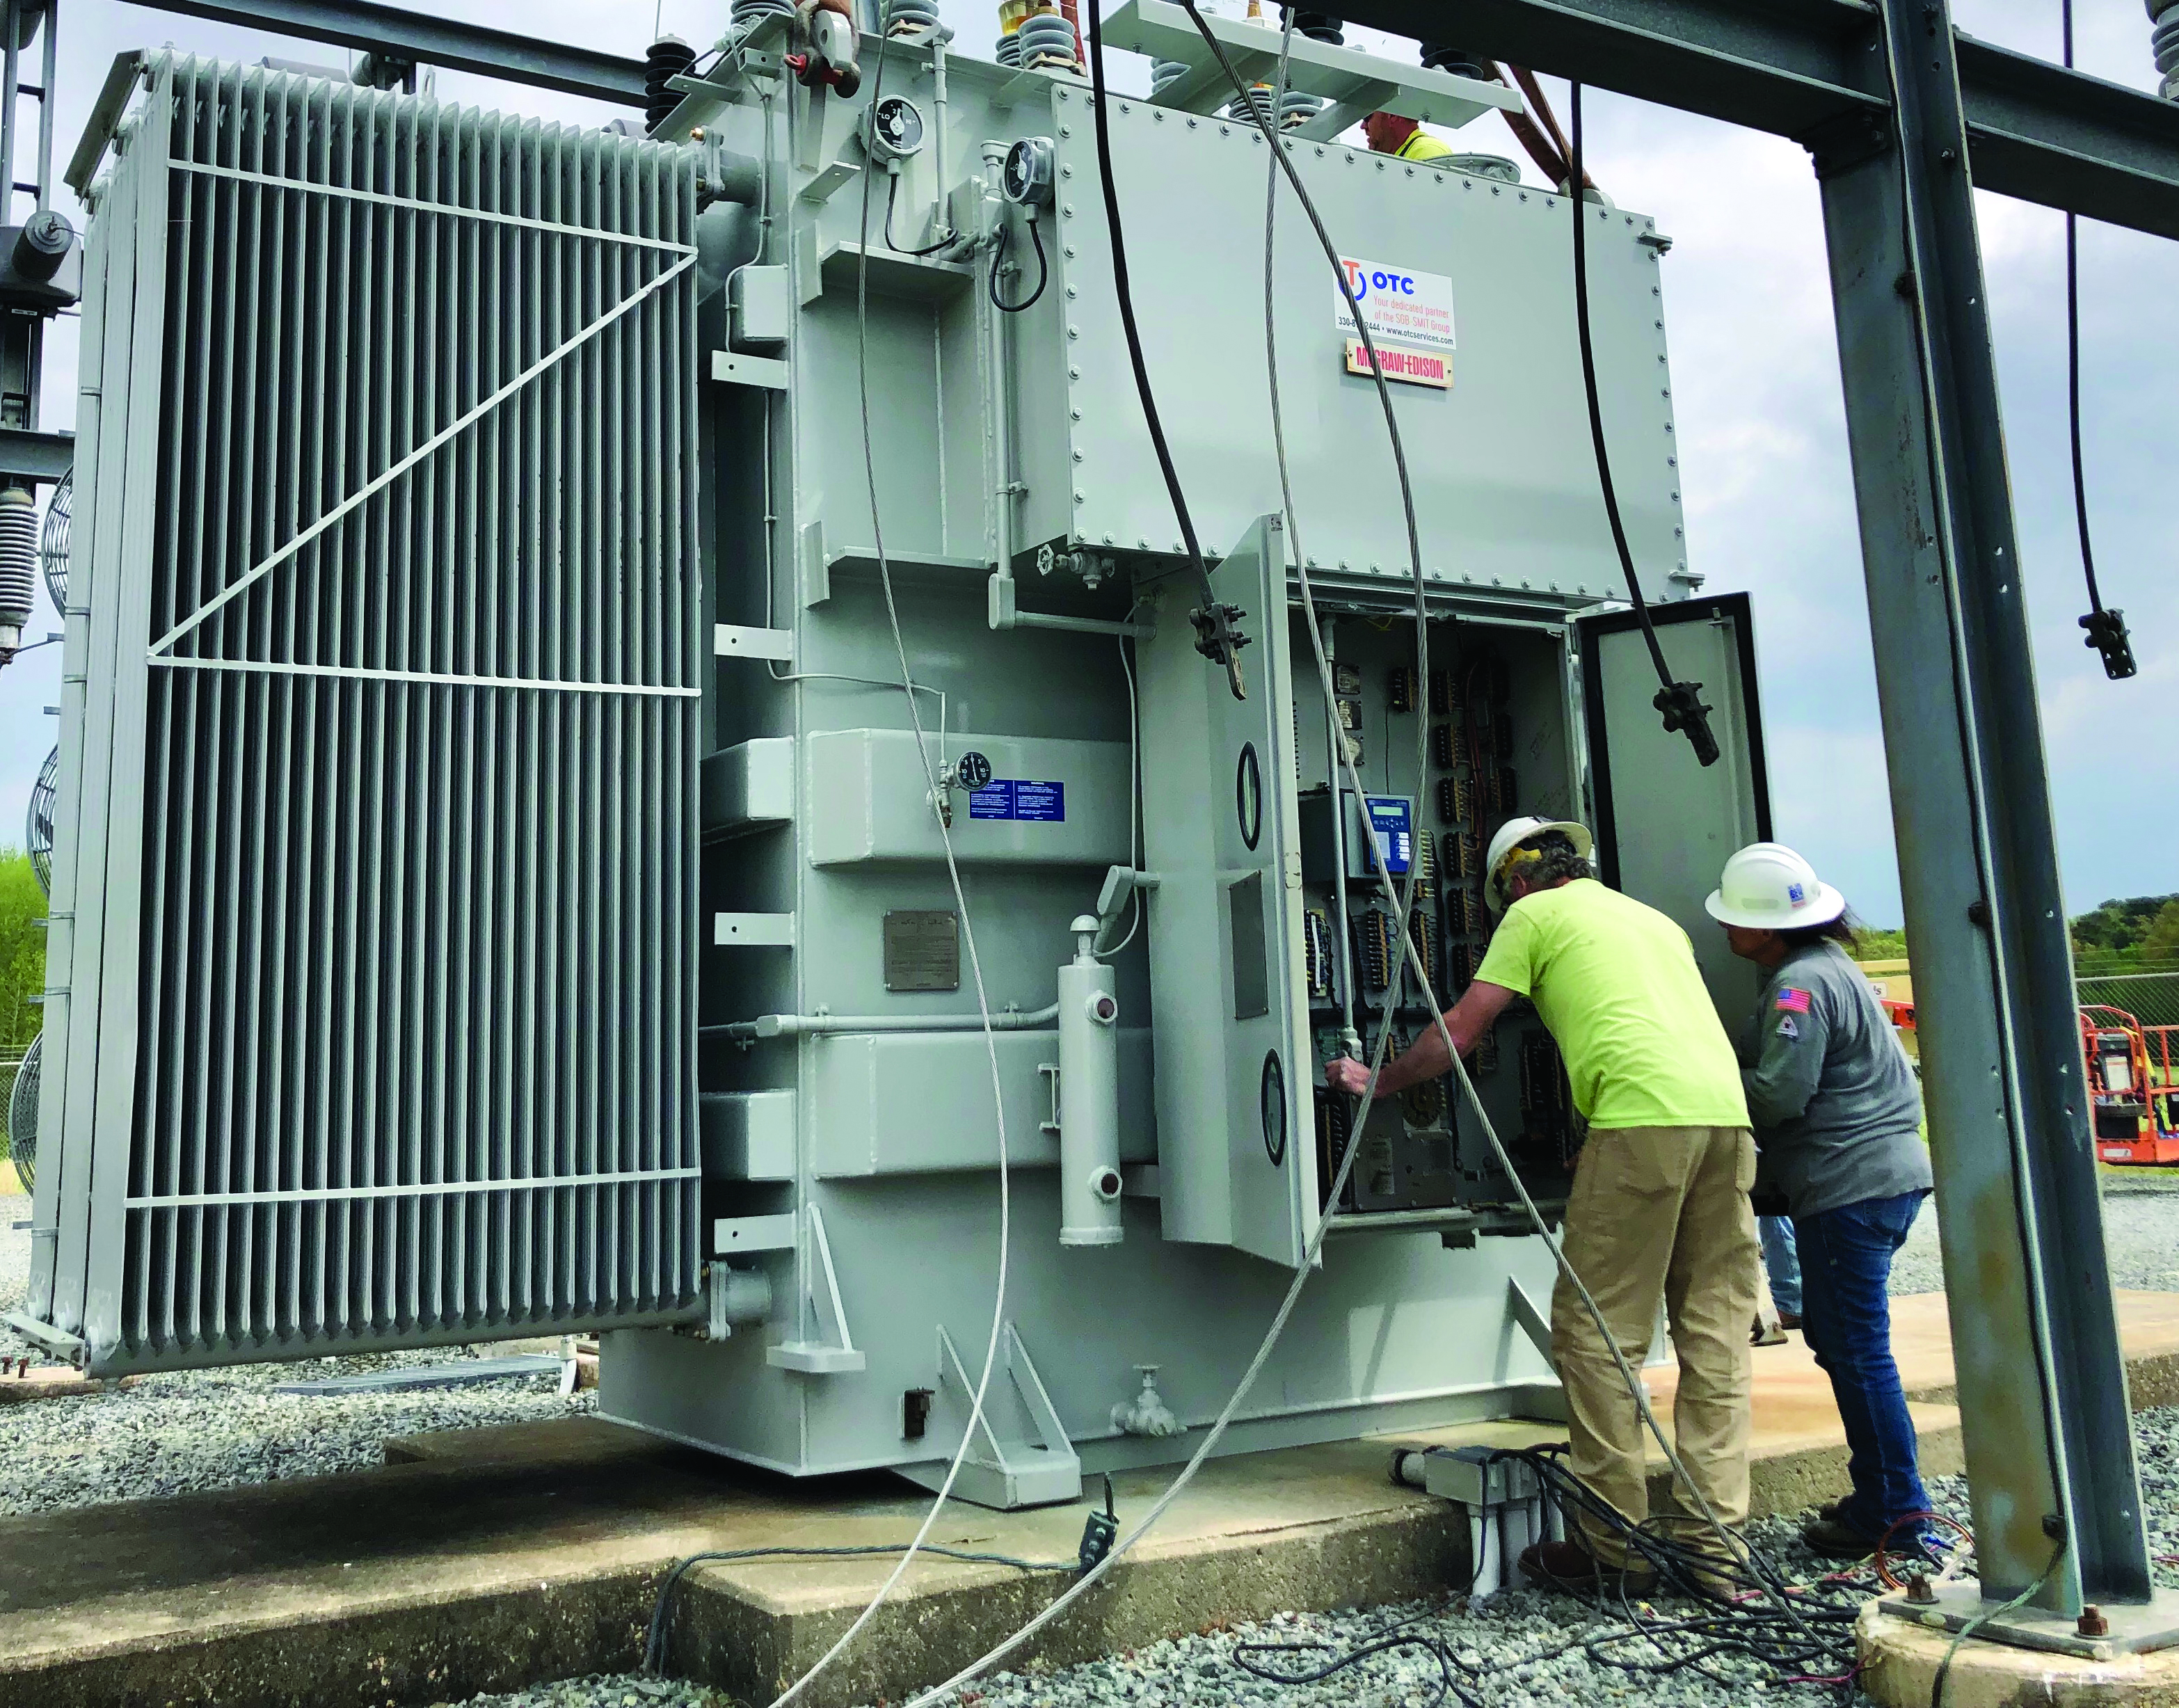 Working in a Substation